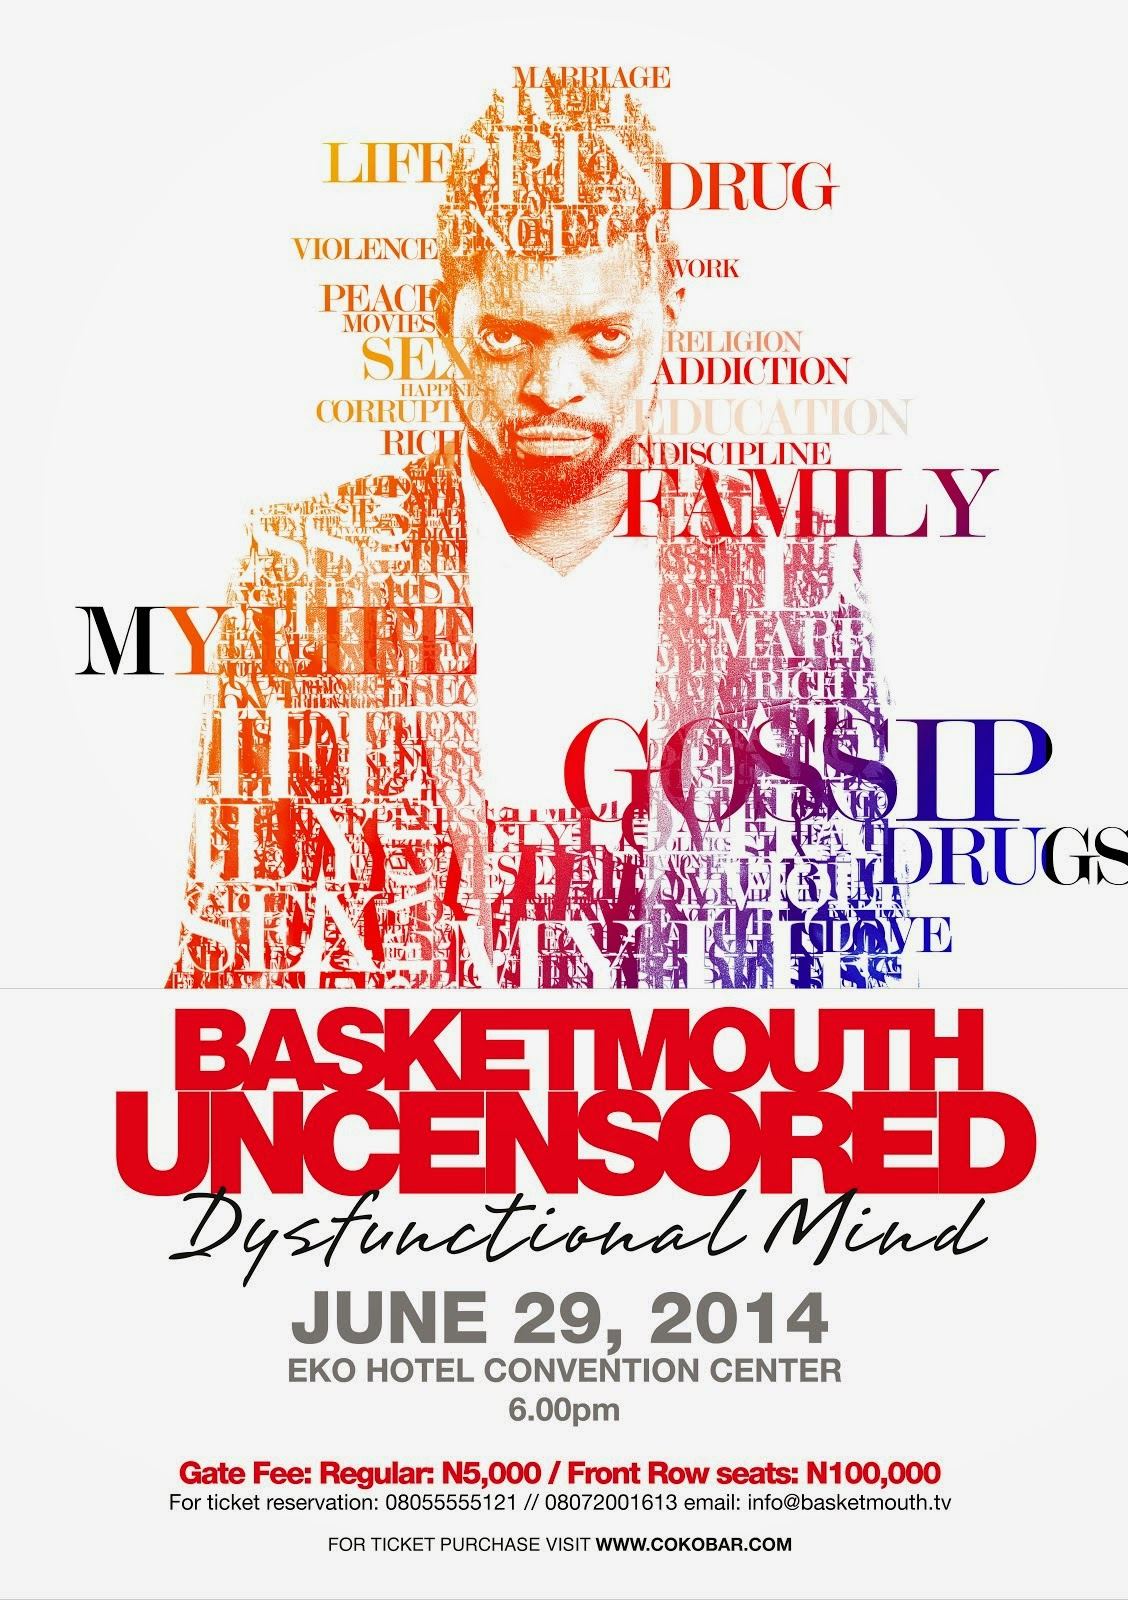 BaSkEtMoUtH uNcEnSoReD